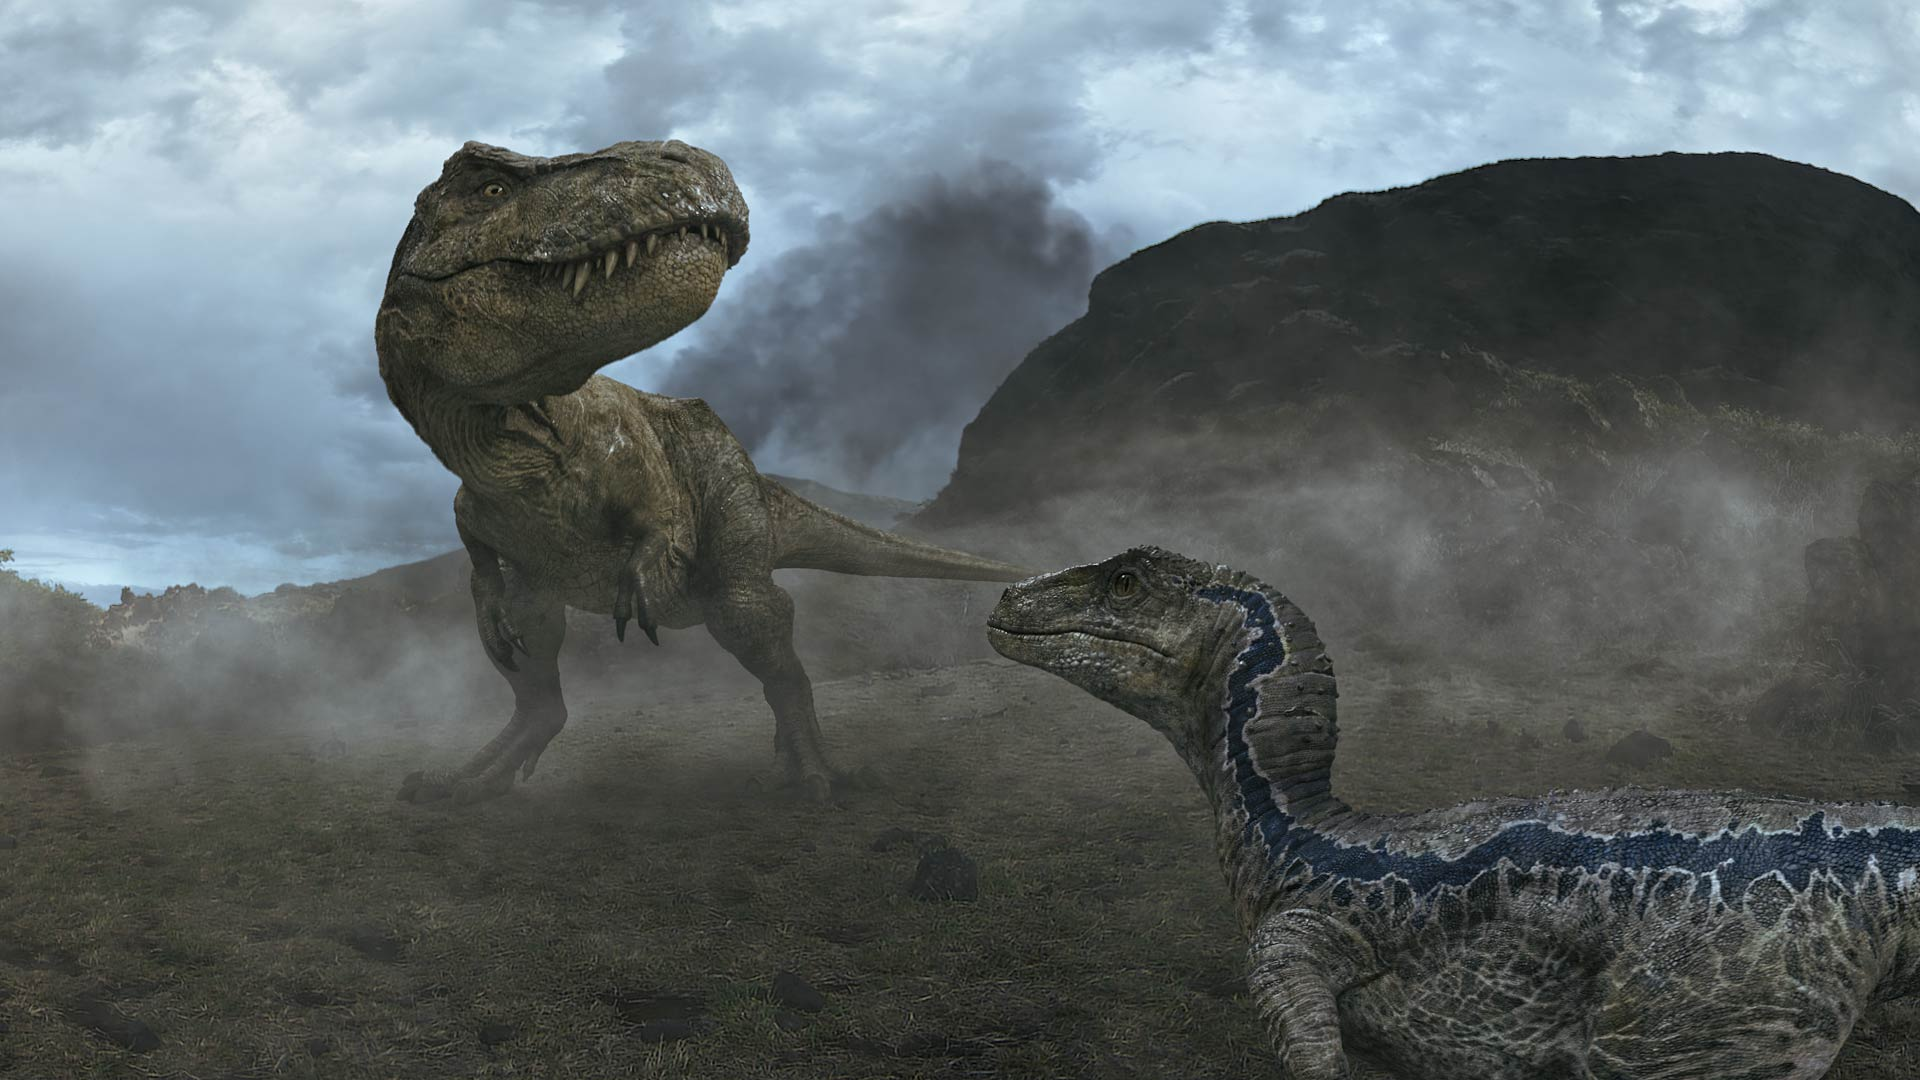 Still from Jurassic World: Blue